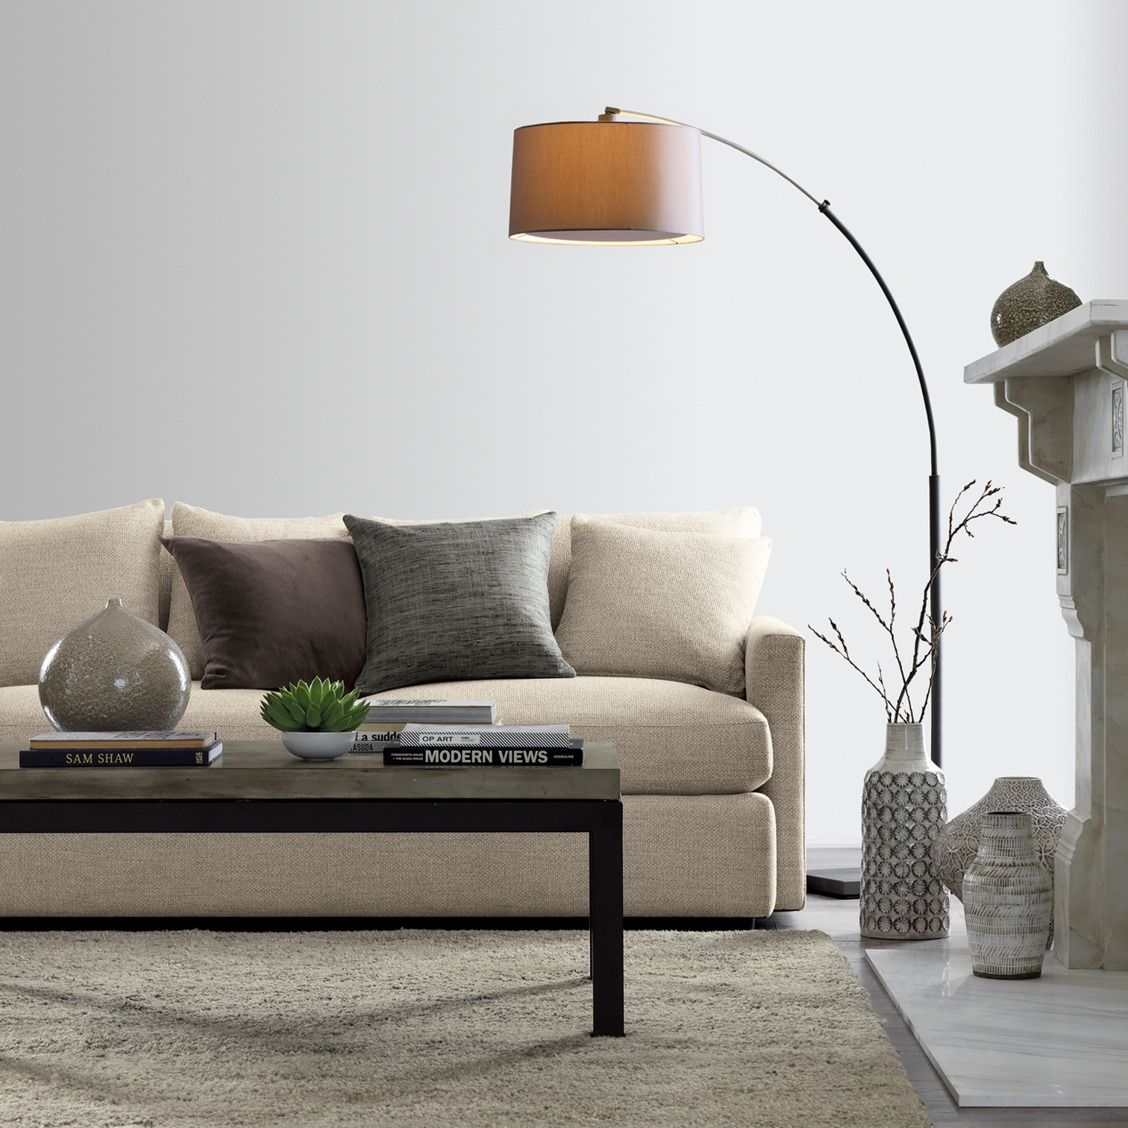 Dexter Arc Floor Lamp with Grey Shade | Top drama, Drum shade and Steel